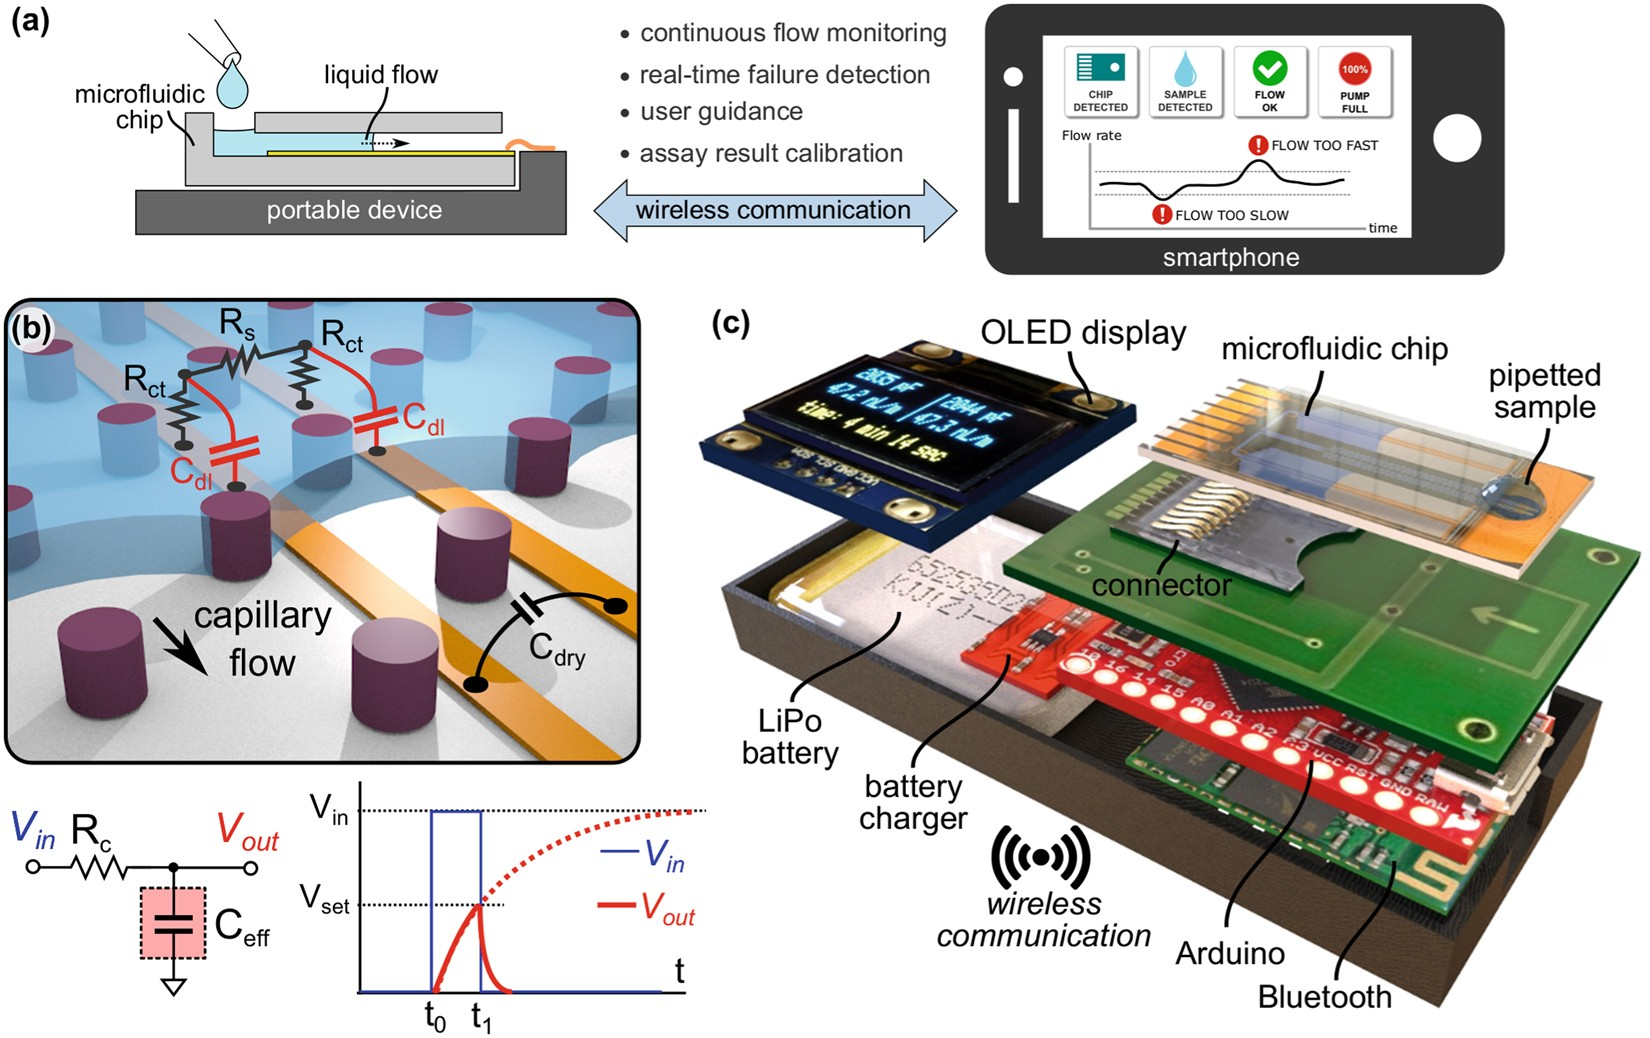 Sub-nanoliter, real-time flow monitoring in microfluidic chips using